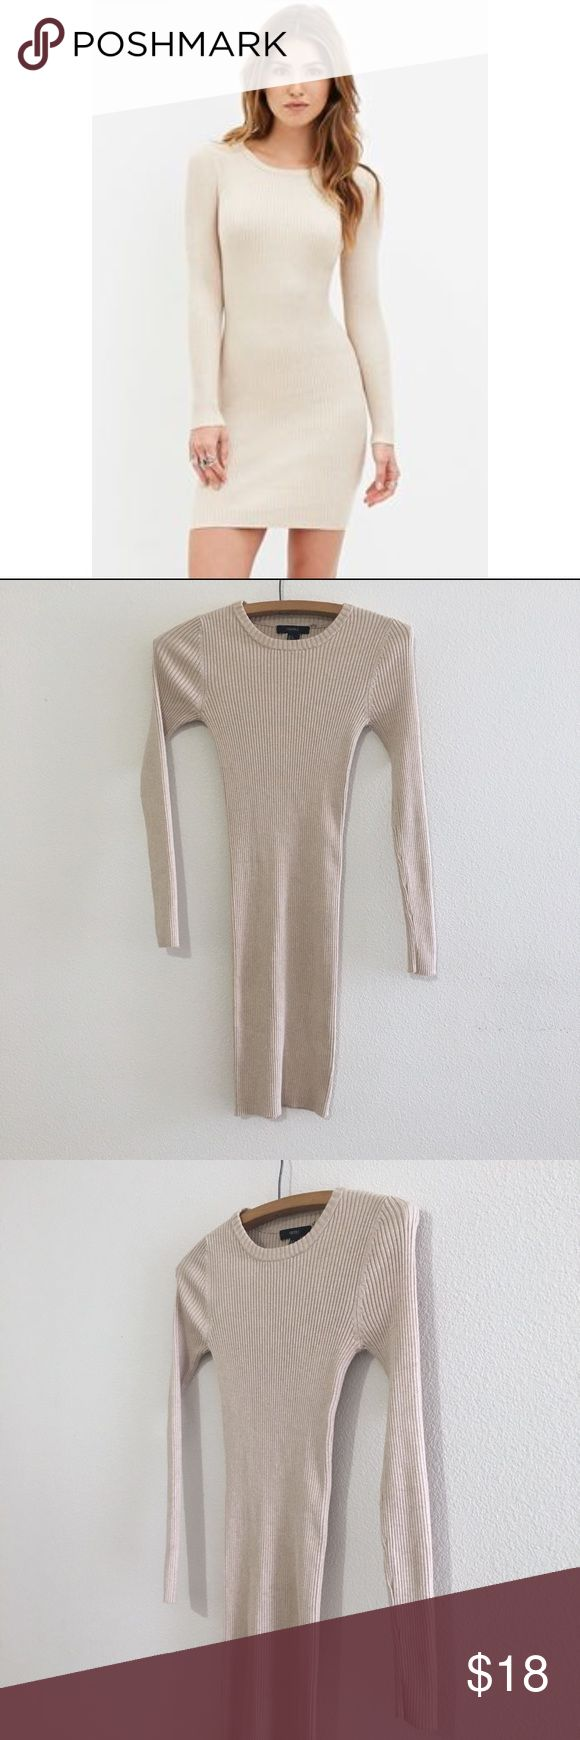 """Forever 21 Long Sleeve Ribbed Knit Bodycon Dress Forever 21 Long Sleeve Ribbed Knit Bodycon Dress. Light tan.  Model pic is a little lighter - same dress different color   Size: Small About 33"""" length (top shoulder to bottom)  Good pre loved condition.   Bundle fav items for a personal discount. Offers are always welcome, too! No trades. Thank you! (34)  Tags: back to school, college, high school, on trend, trendy, date night, girls night, fall, casual, sexy, F21 Forever 21 Dresses Long…"""